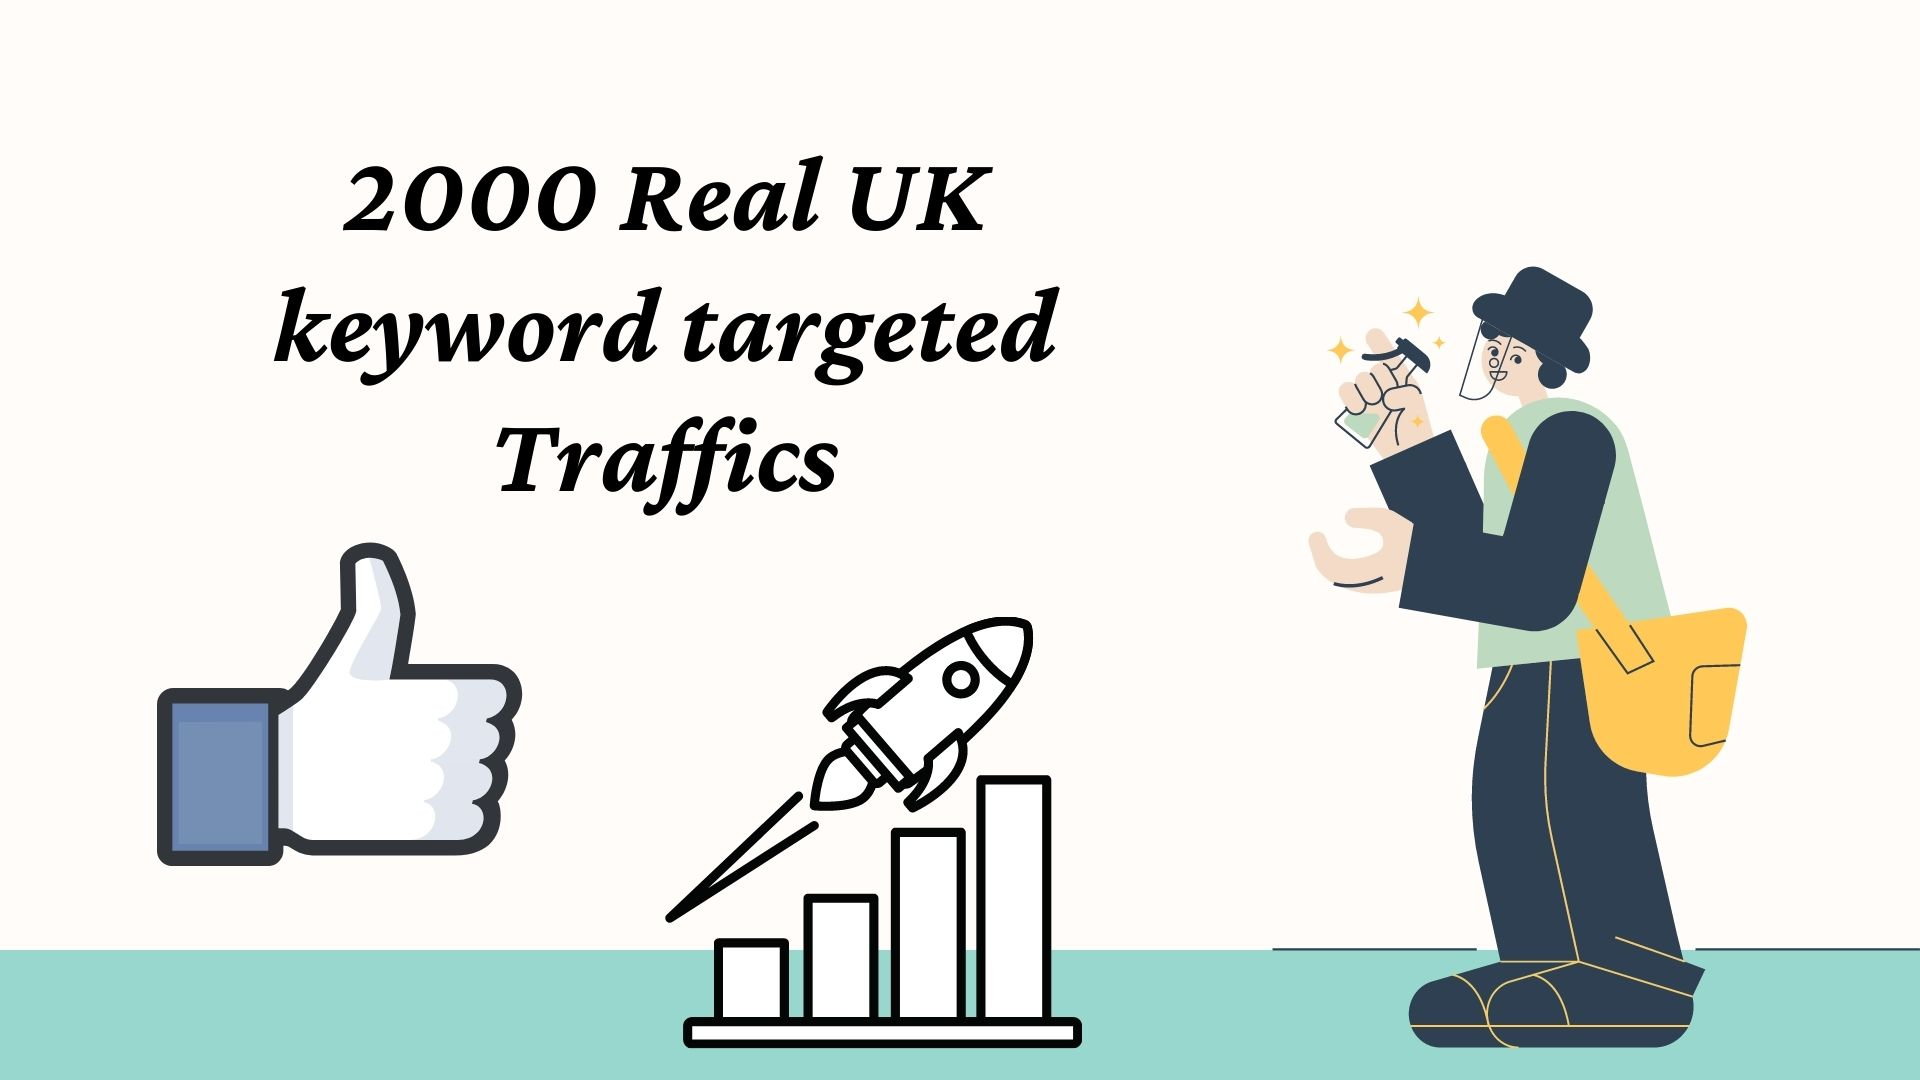 2000 Real UK keyword targeted Traffics